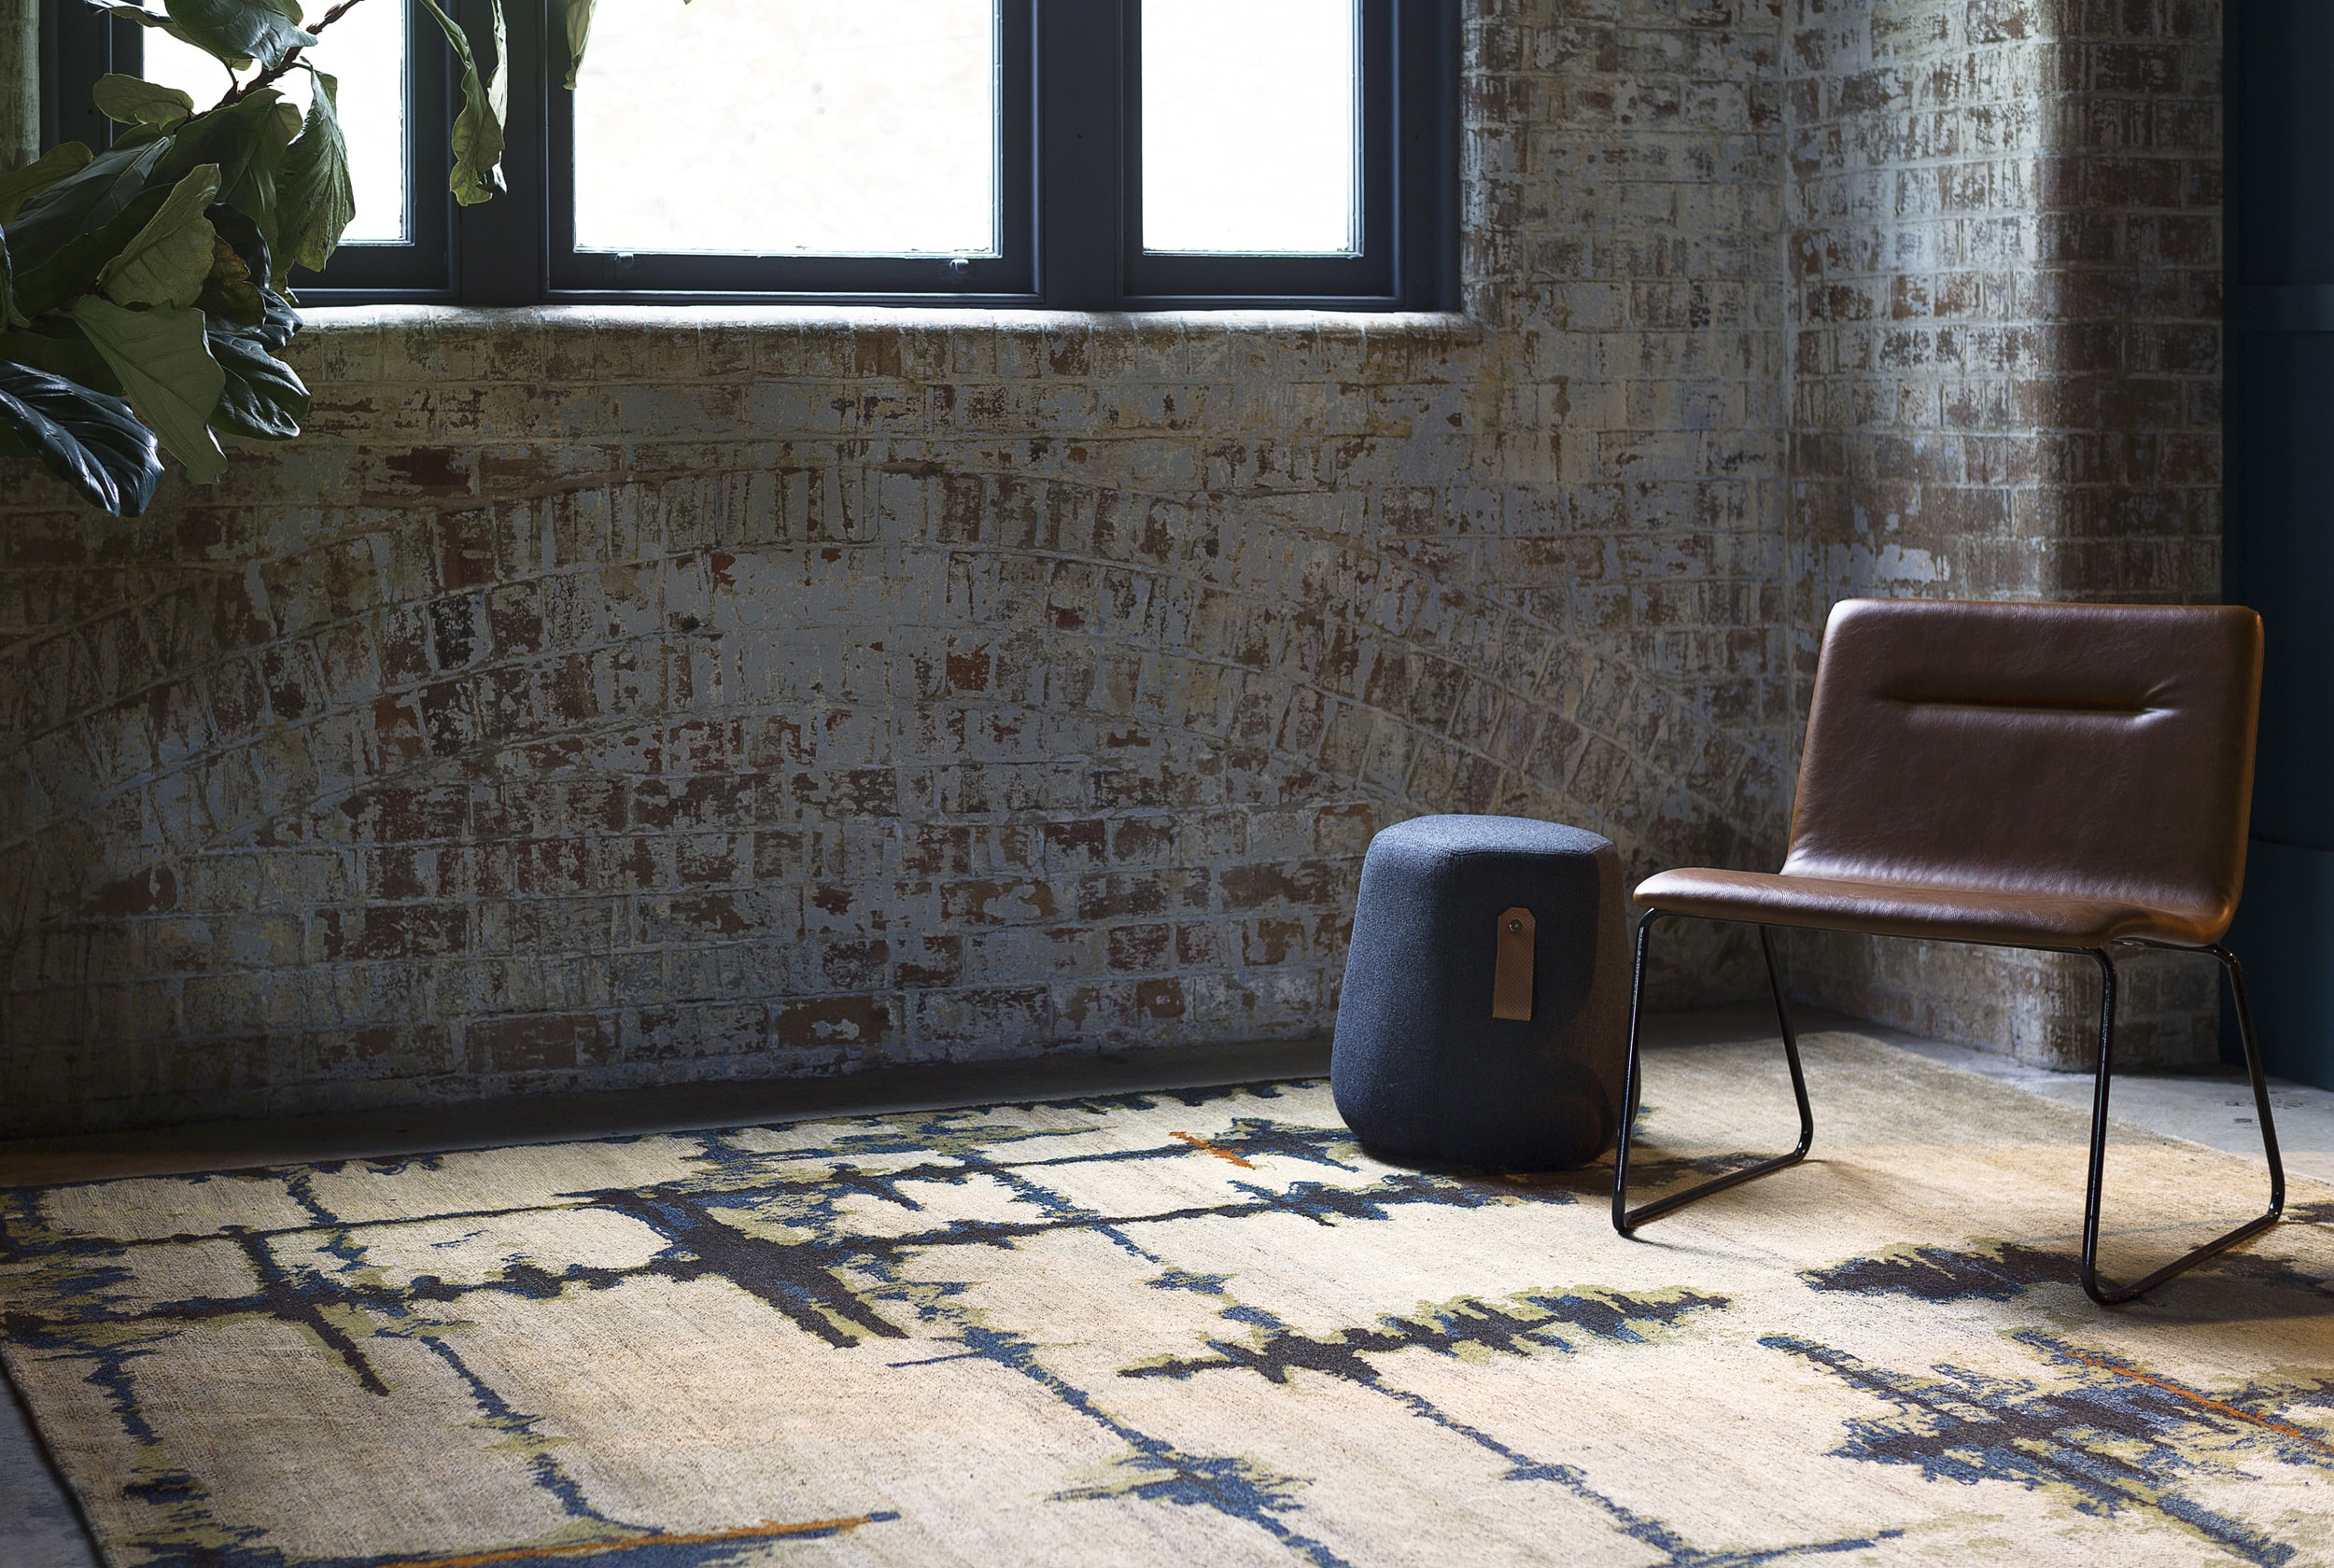 Designer Rugs Launch New Collection In Collaboration With Hare And Klein Collection Feature Australiainlets Landscape Edit 2 Min